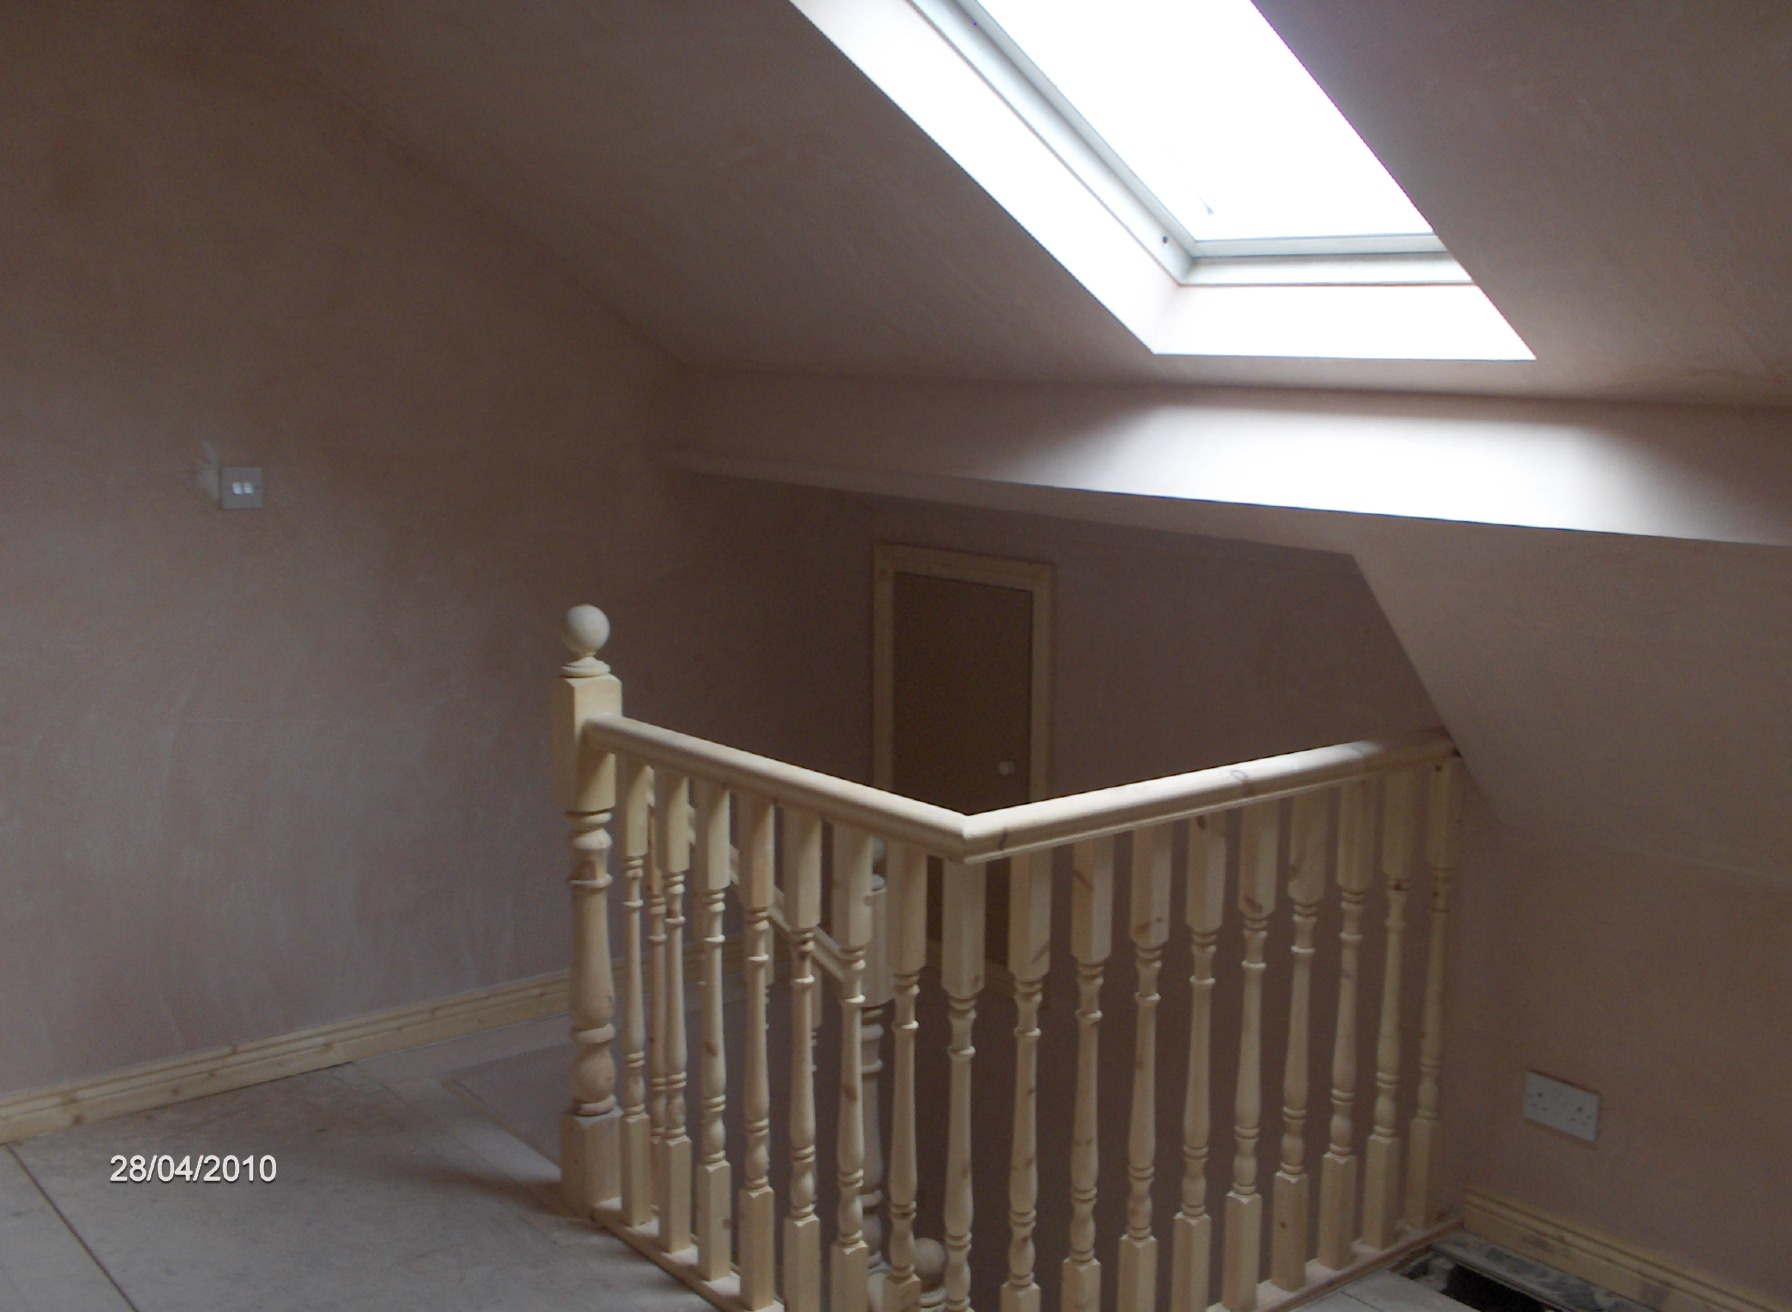 staircase was continued straight up into attic to allow use of attic as another room with downlighters installed,